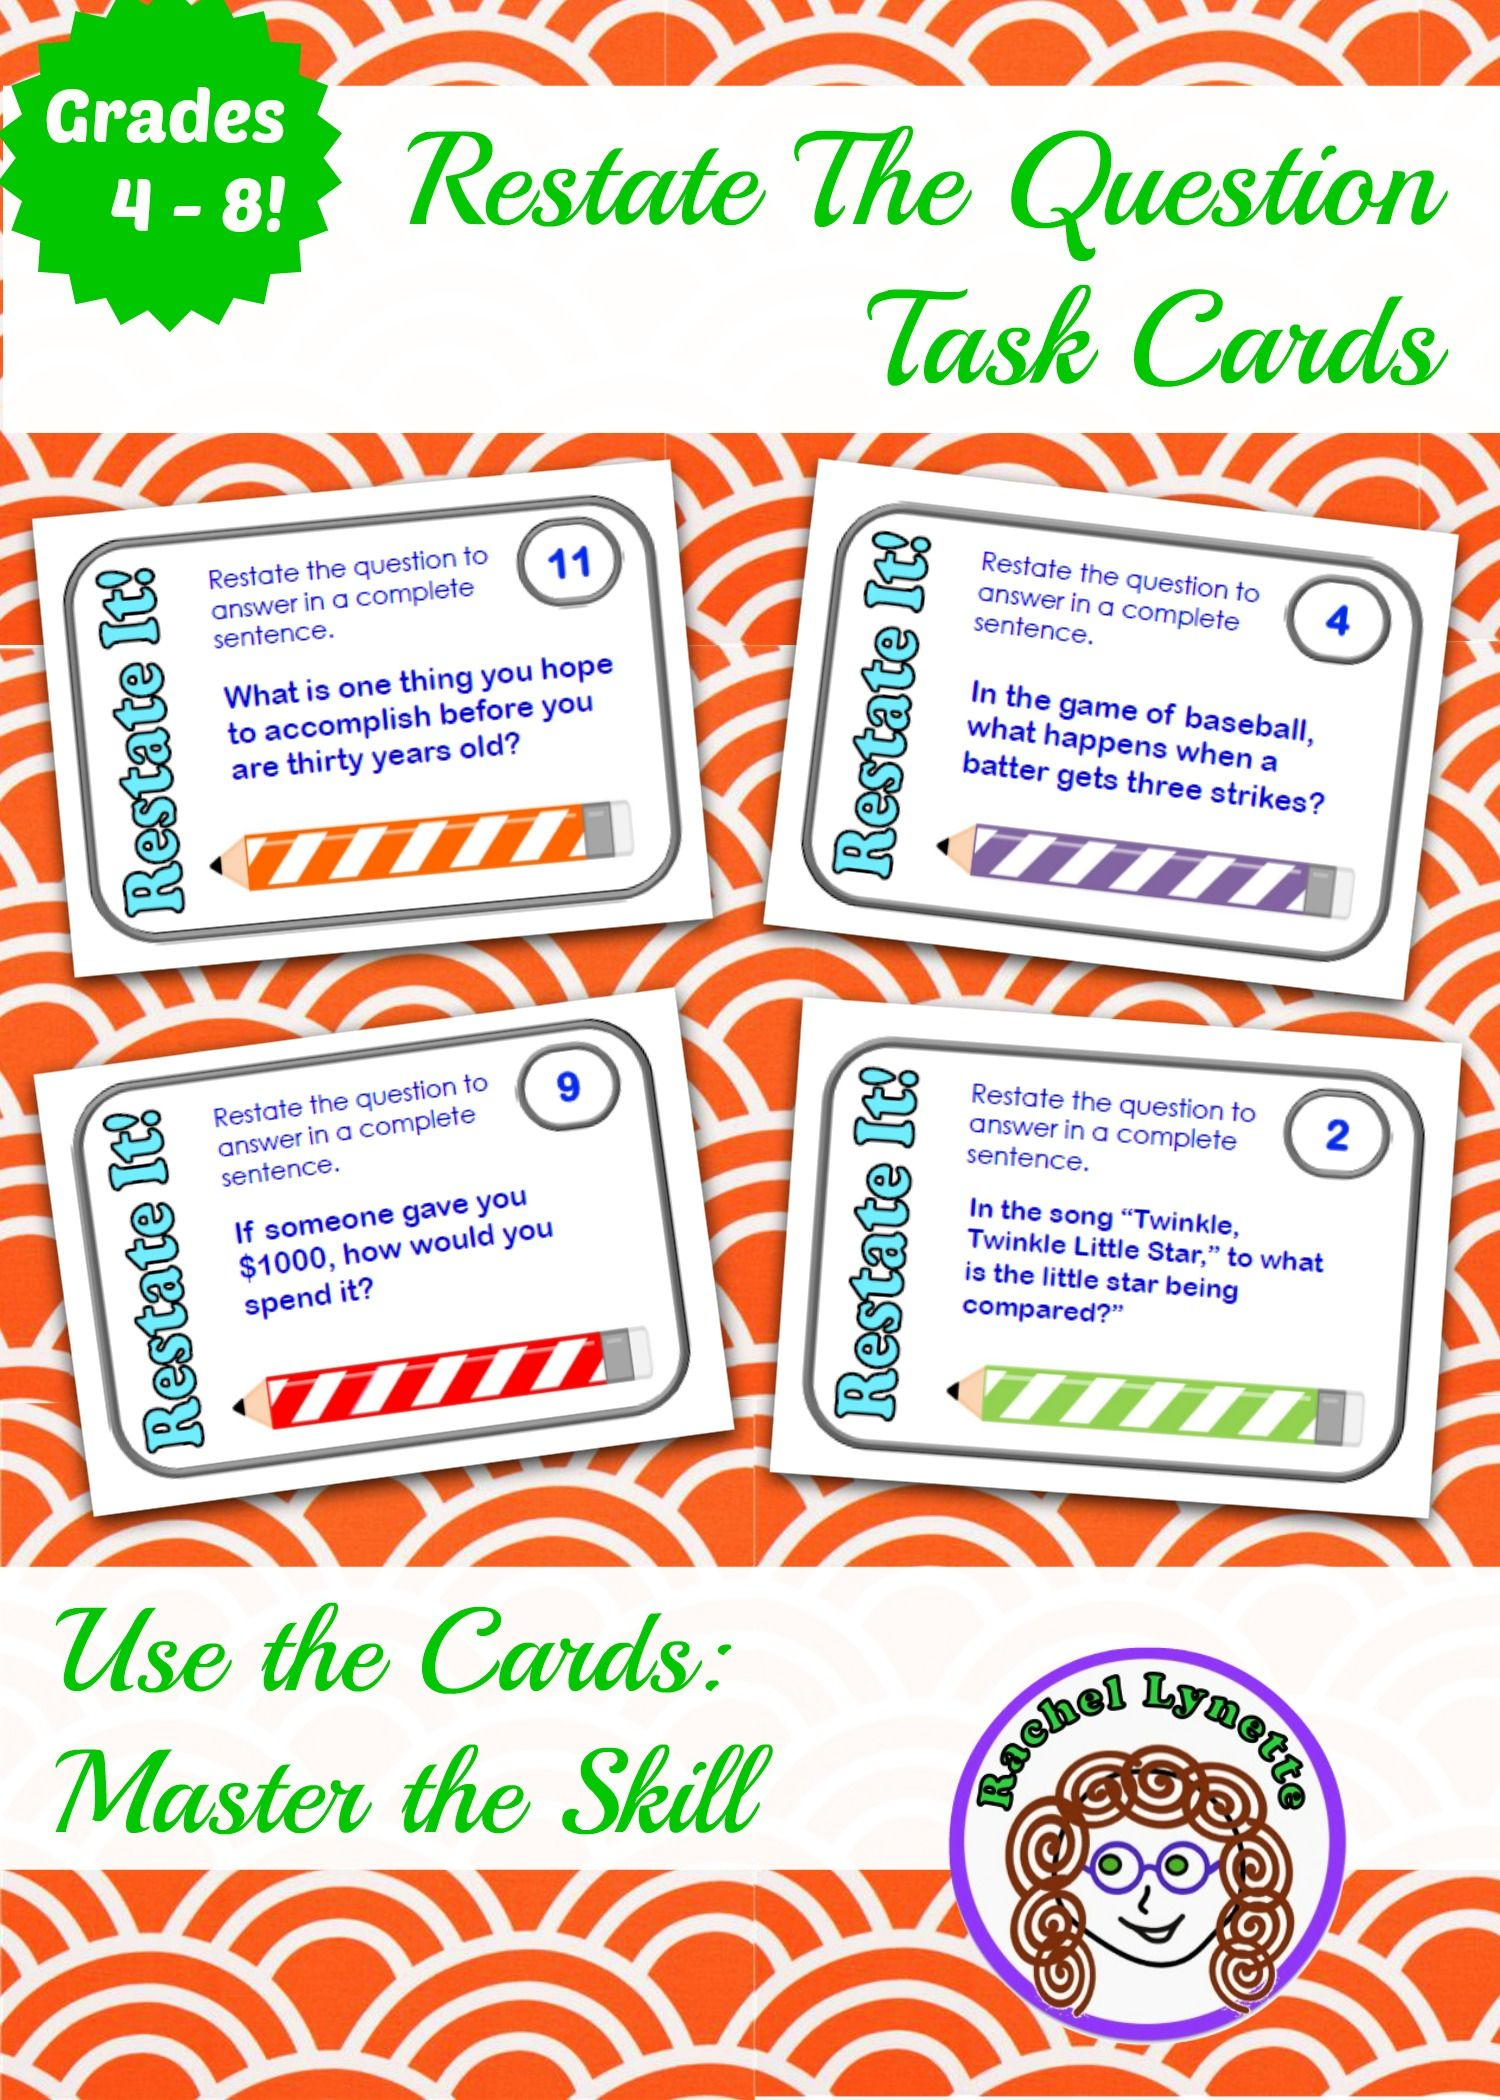 Restate The Question Task Cards The Perfect Way To Master This Skill